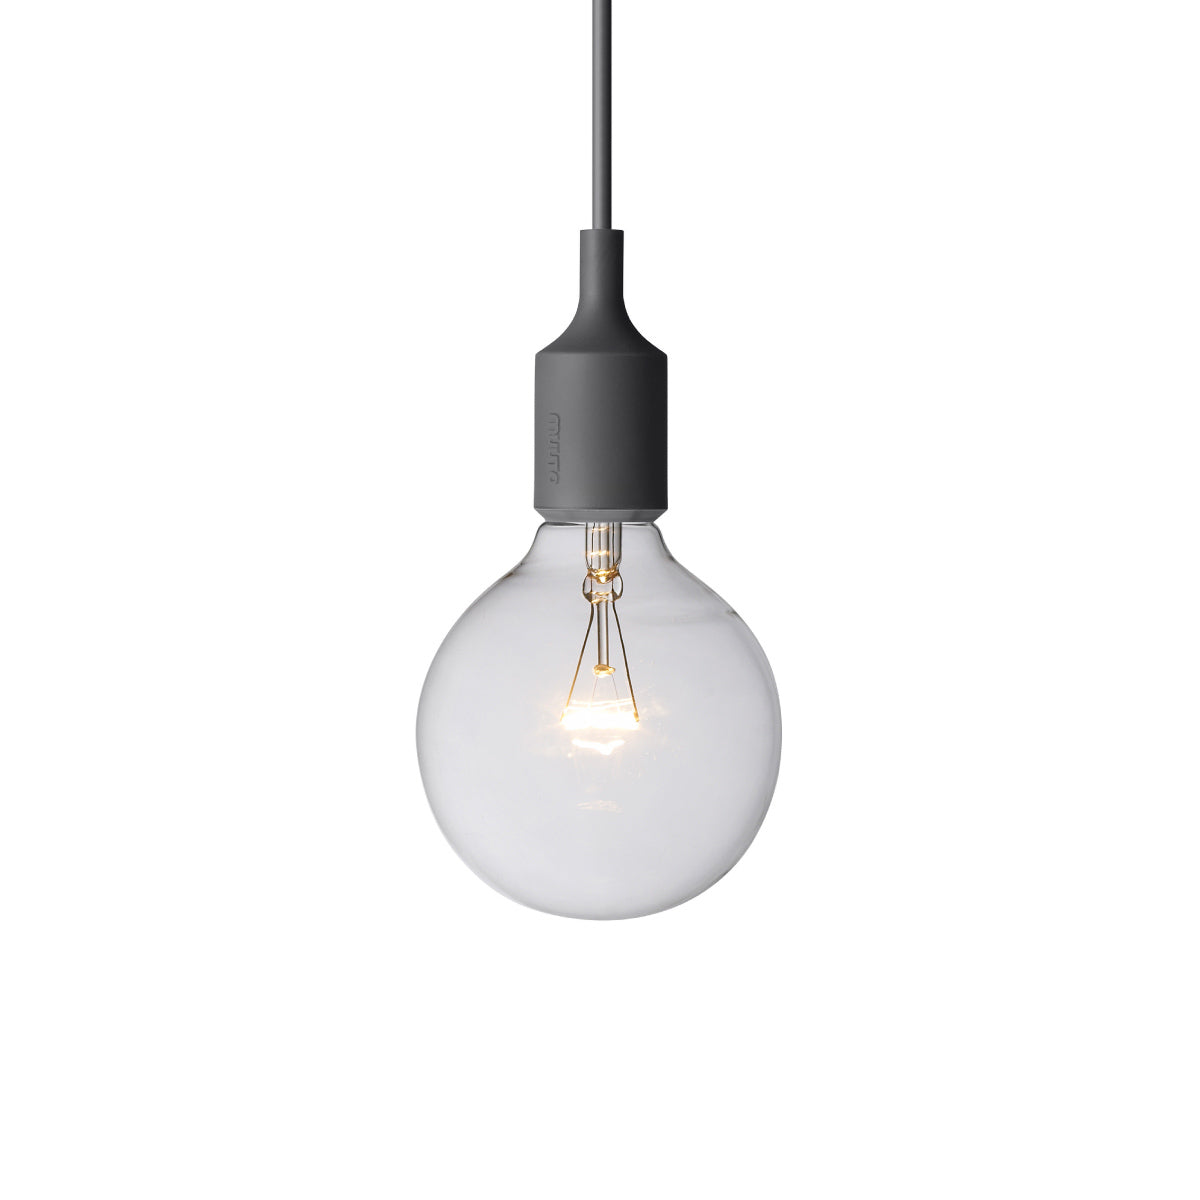 E27 Silicone Light: Dark Grey